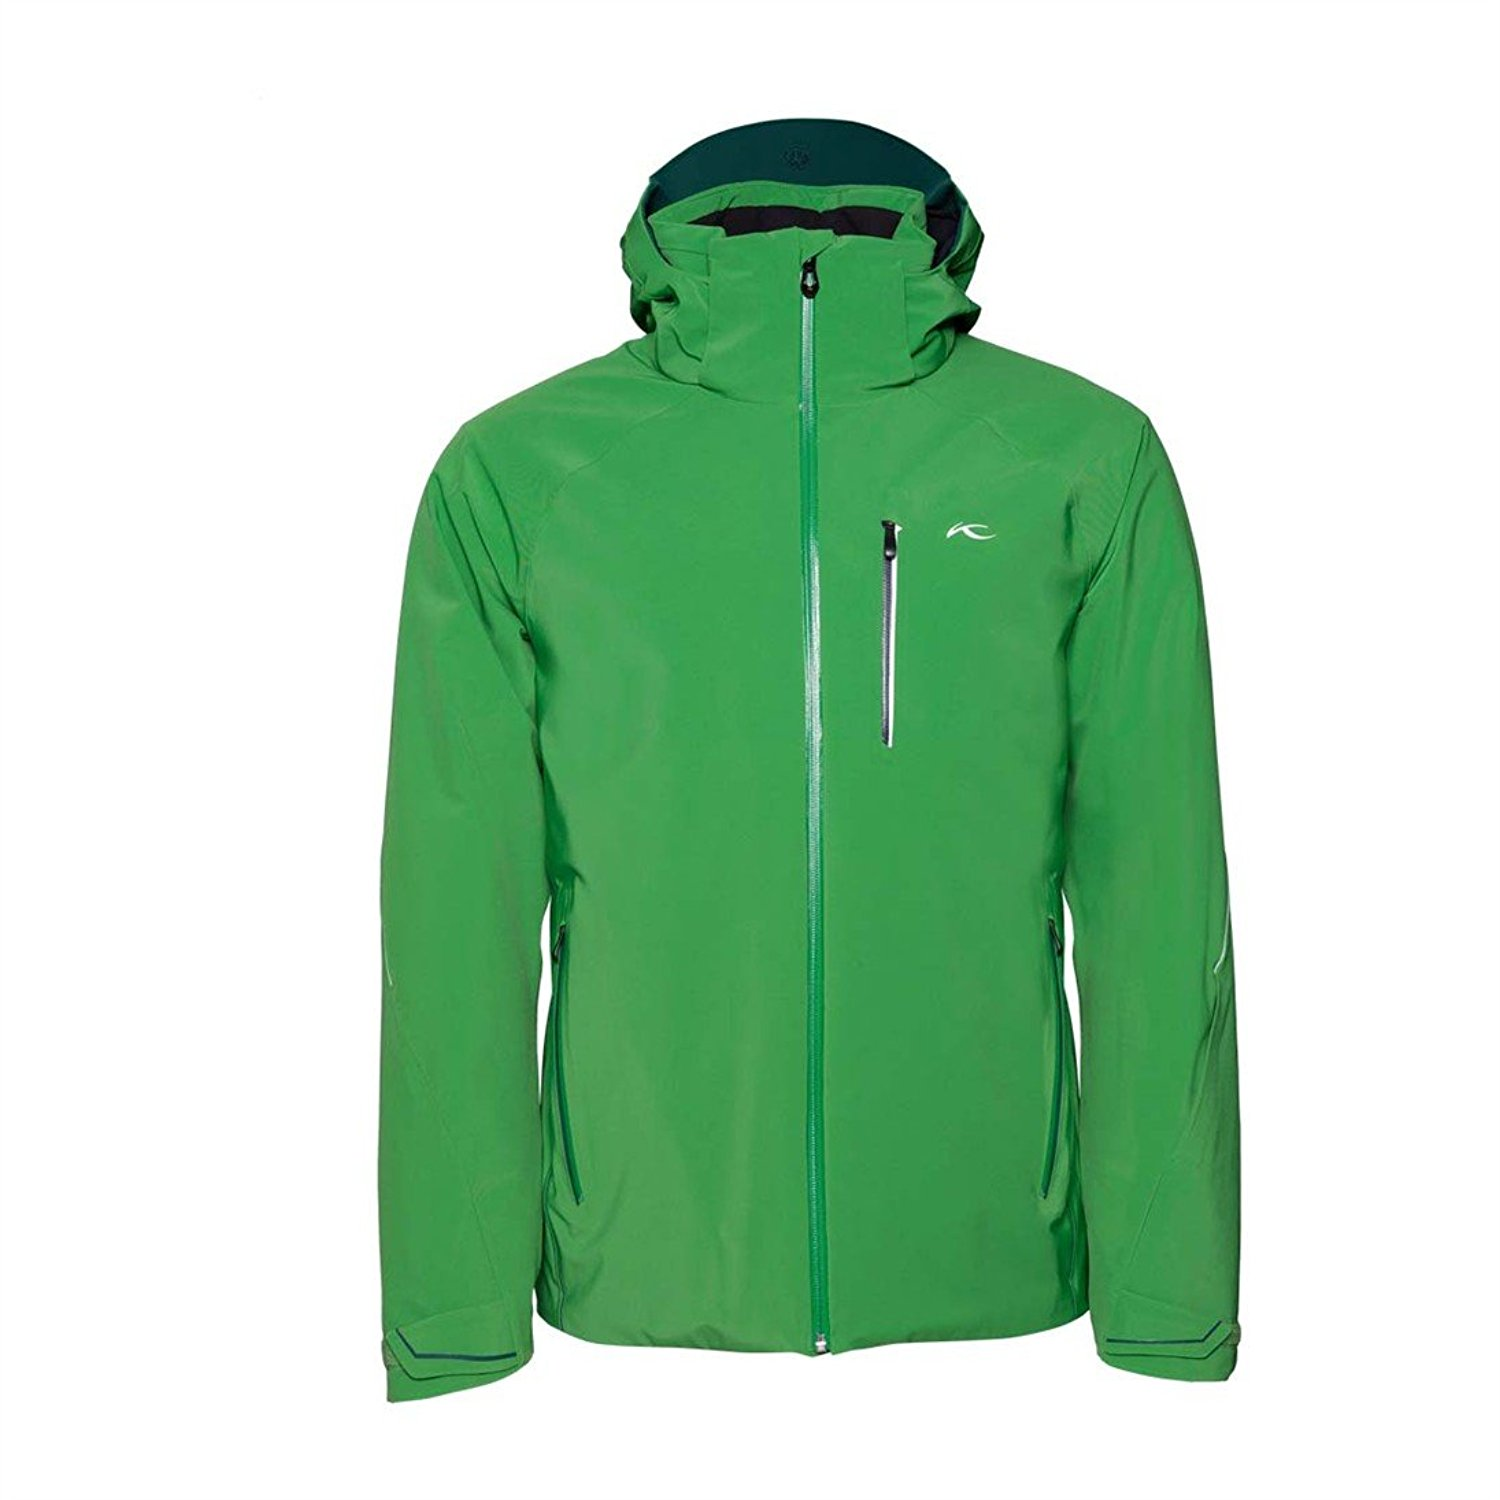 f83b93b577 Buy Kjus Formula Mens Insulated Ski Jacket in Cheap Price on Alibaba.com